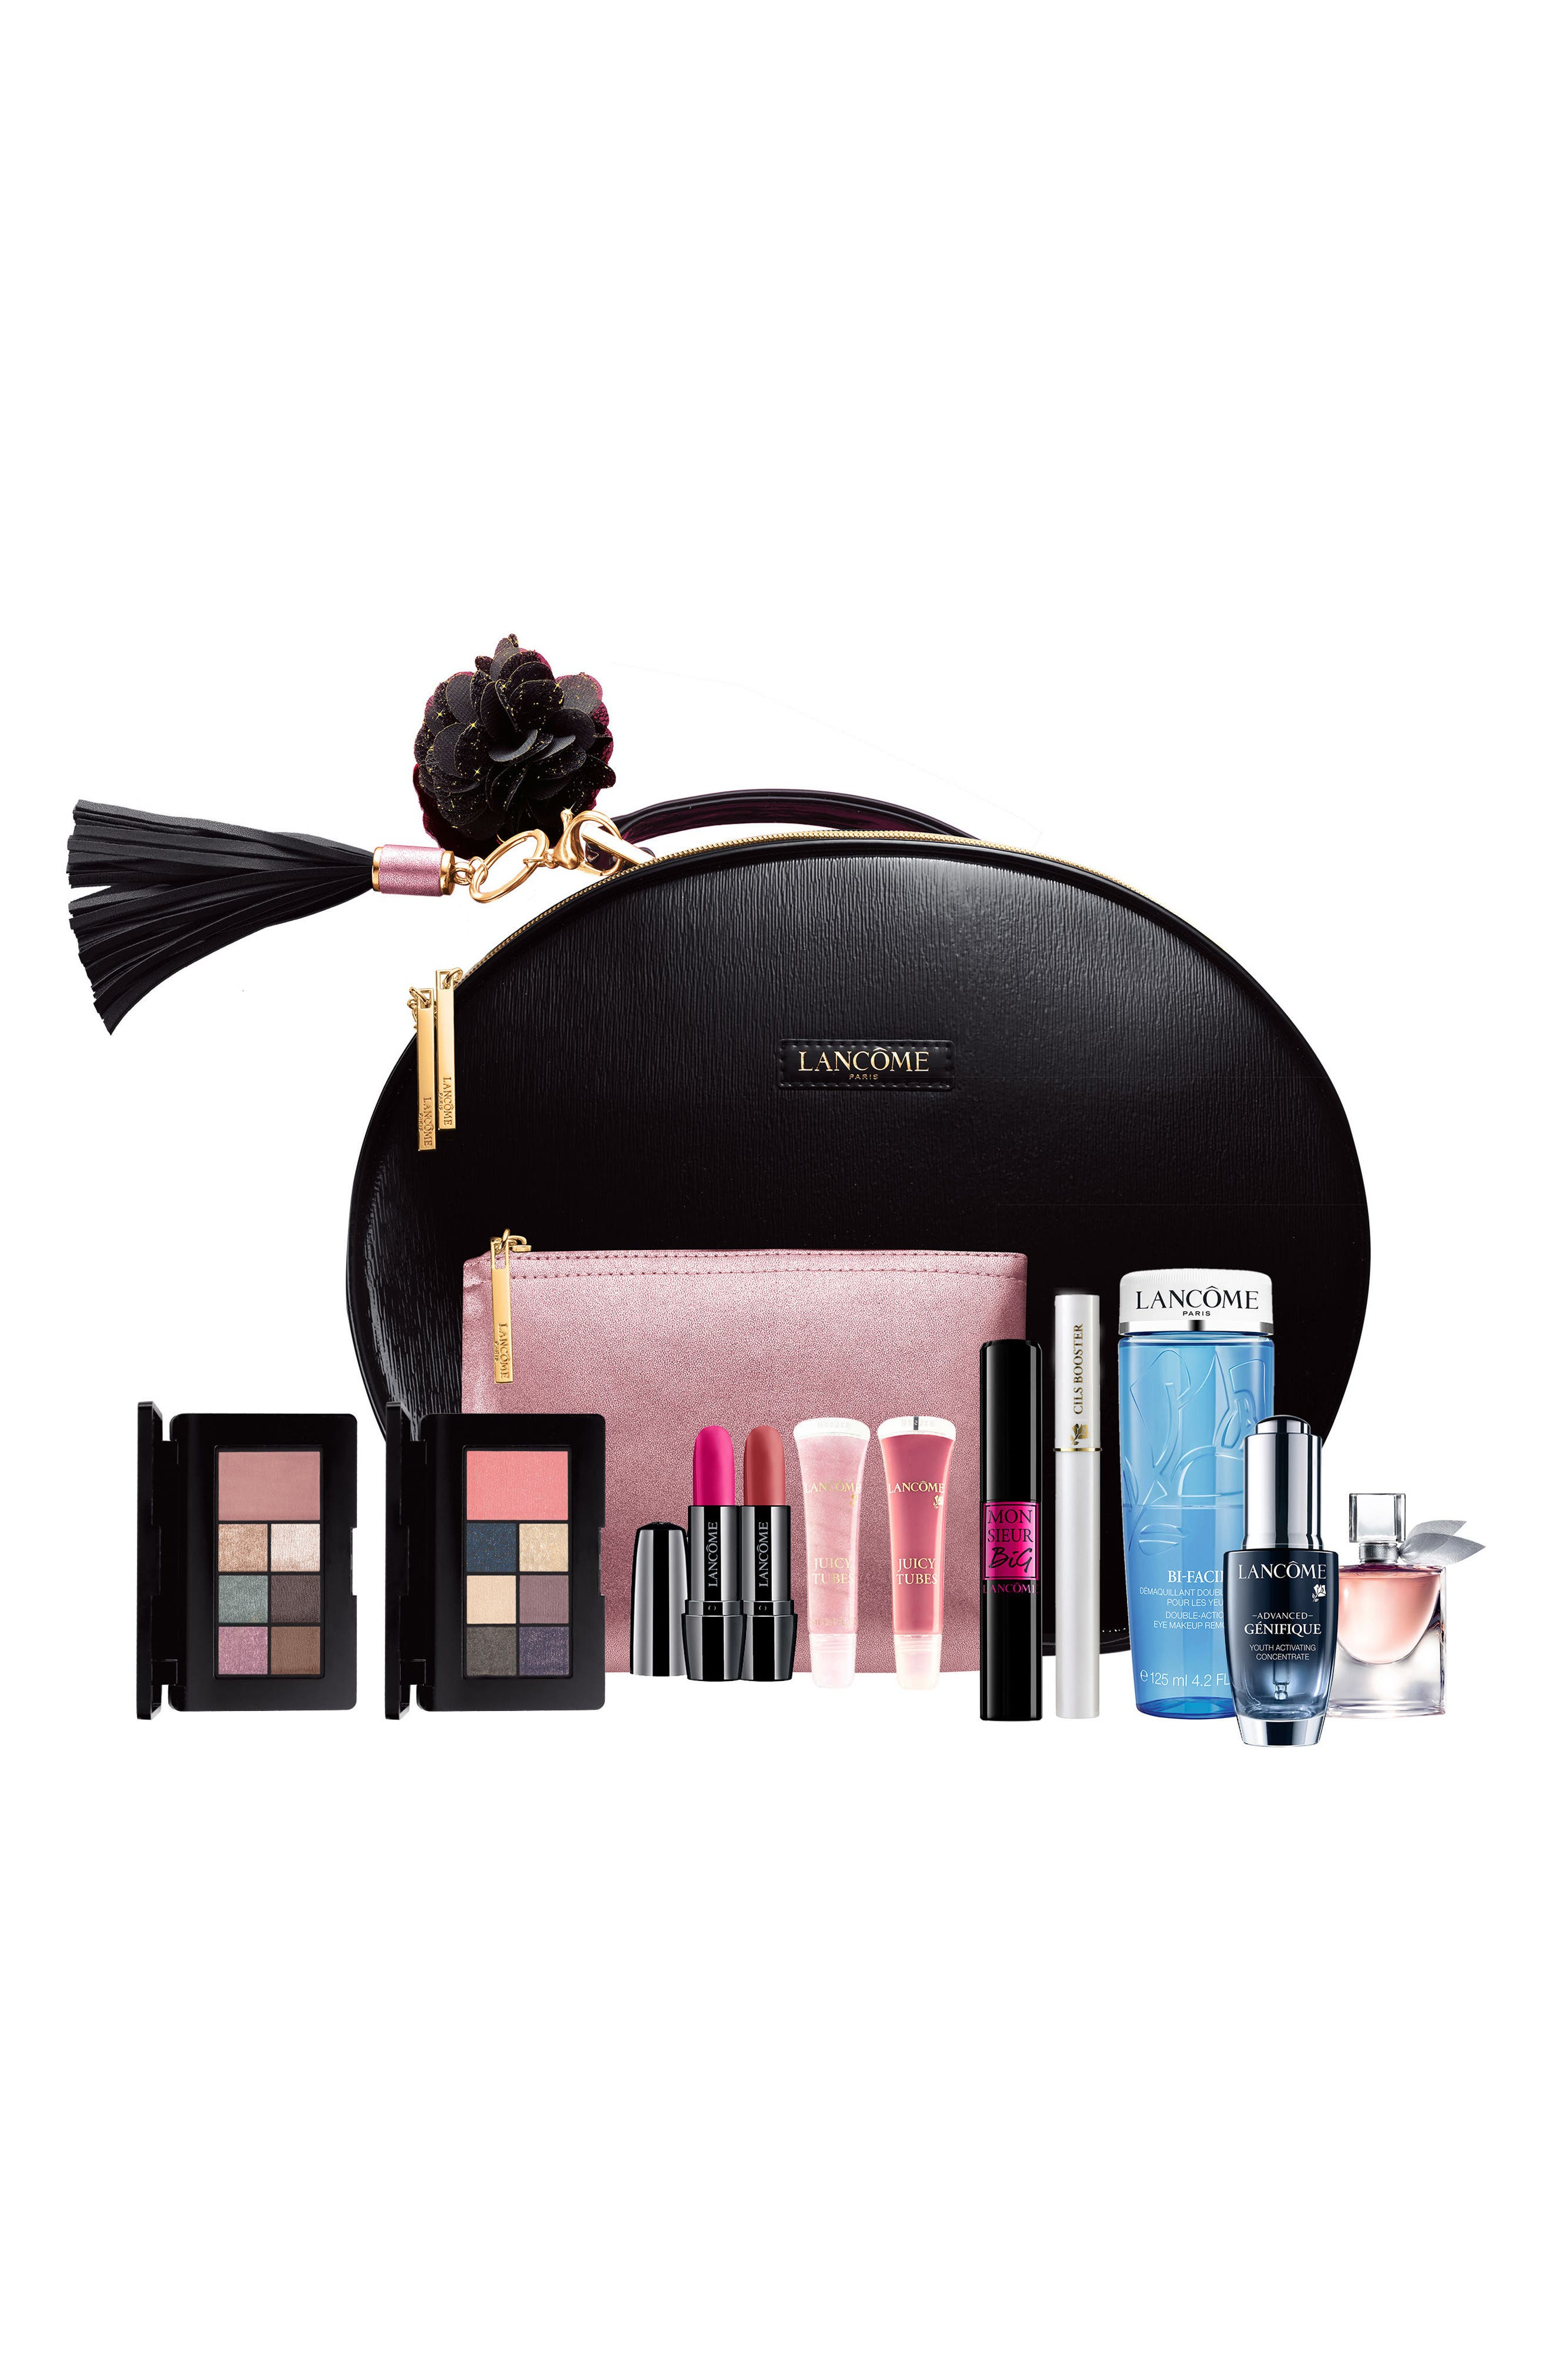 Lancôme Makeup, Skincare, Fragrance, Gift with Purchase | Nordstrom